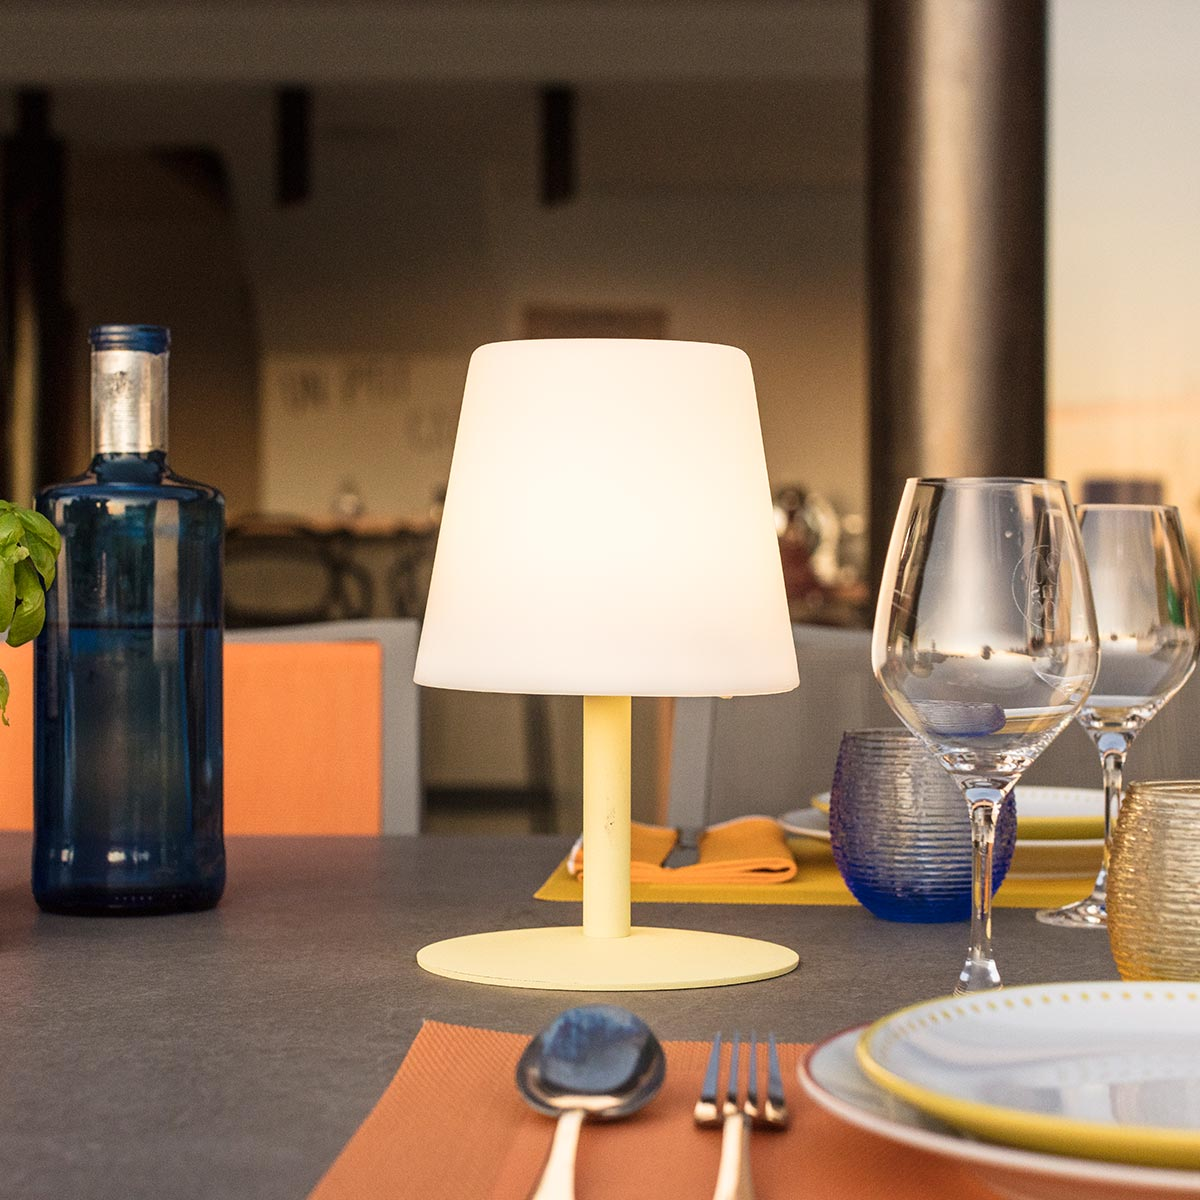 Lampe de table sans fil pied en acier jaune LED blanc chaud/blanc dimmable STANDY MINI Lemon H25cm - REDDECO.com